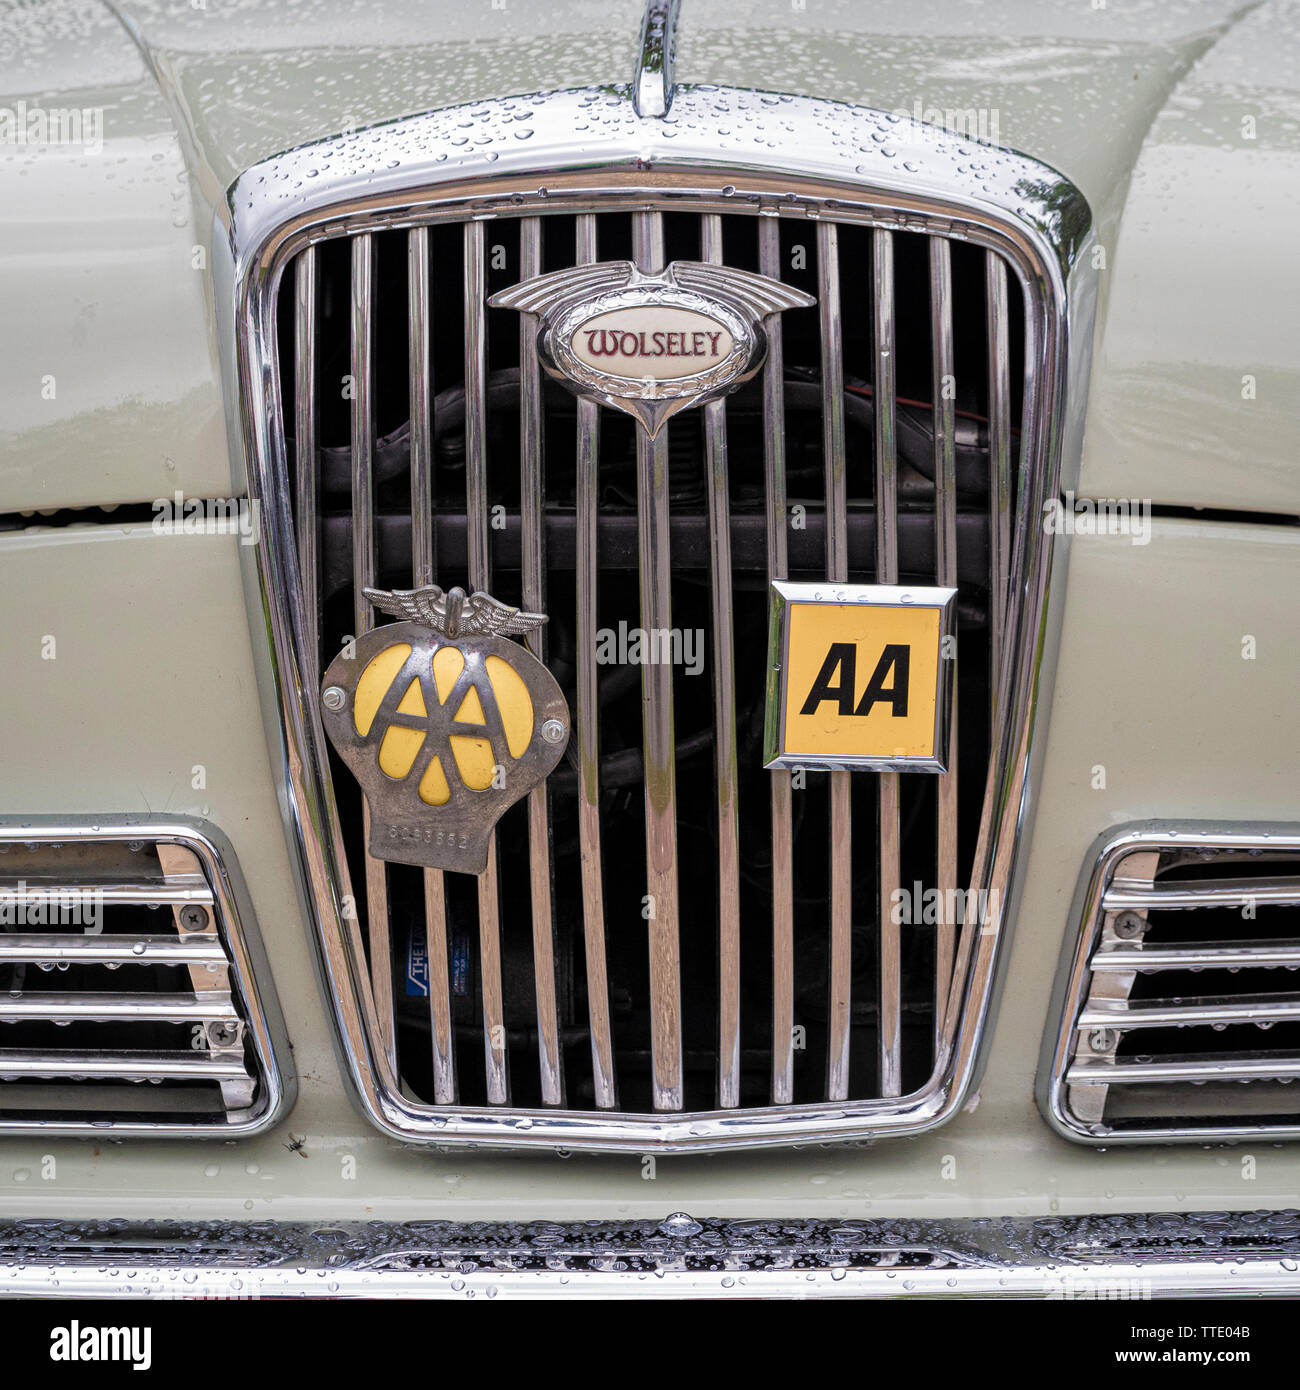 Front chrome radiator grille of Wolseley car with traditional AA metal badges - Stock Image